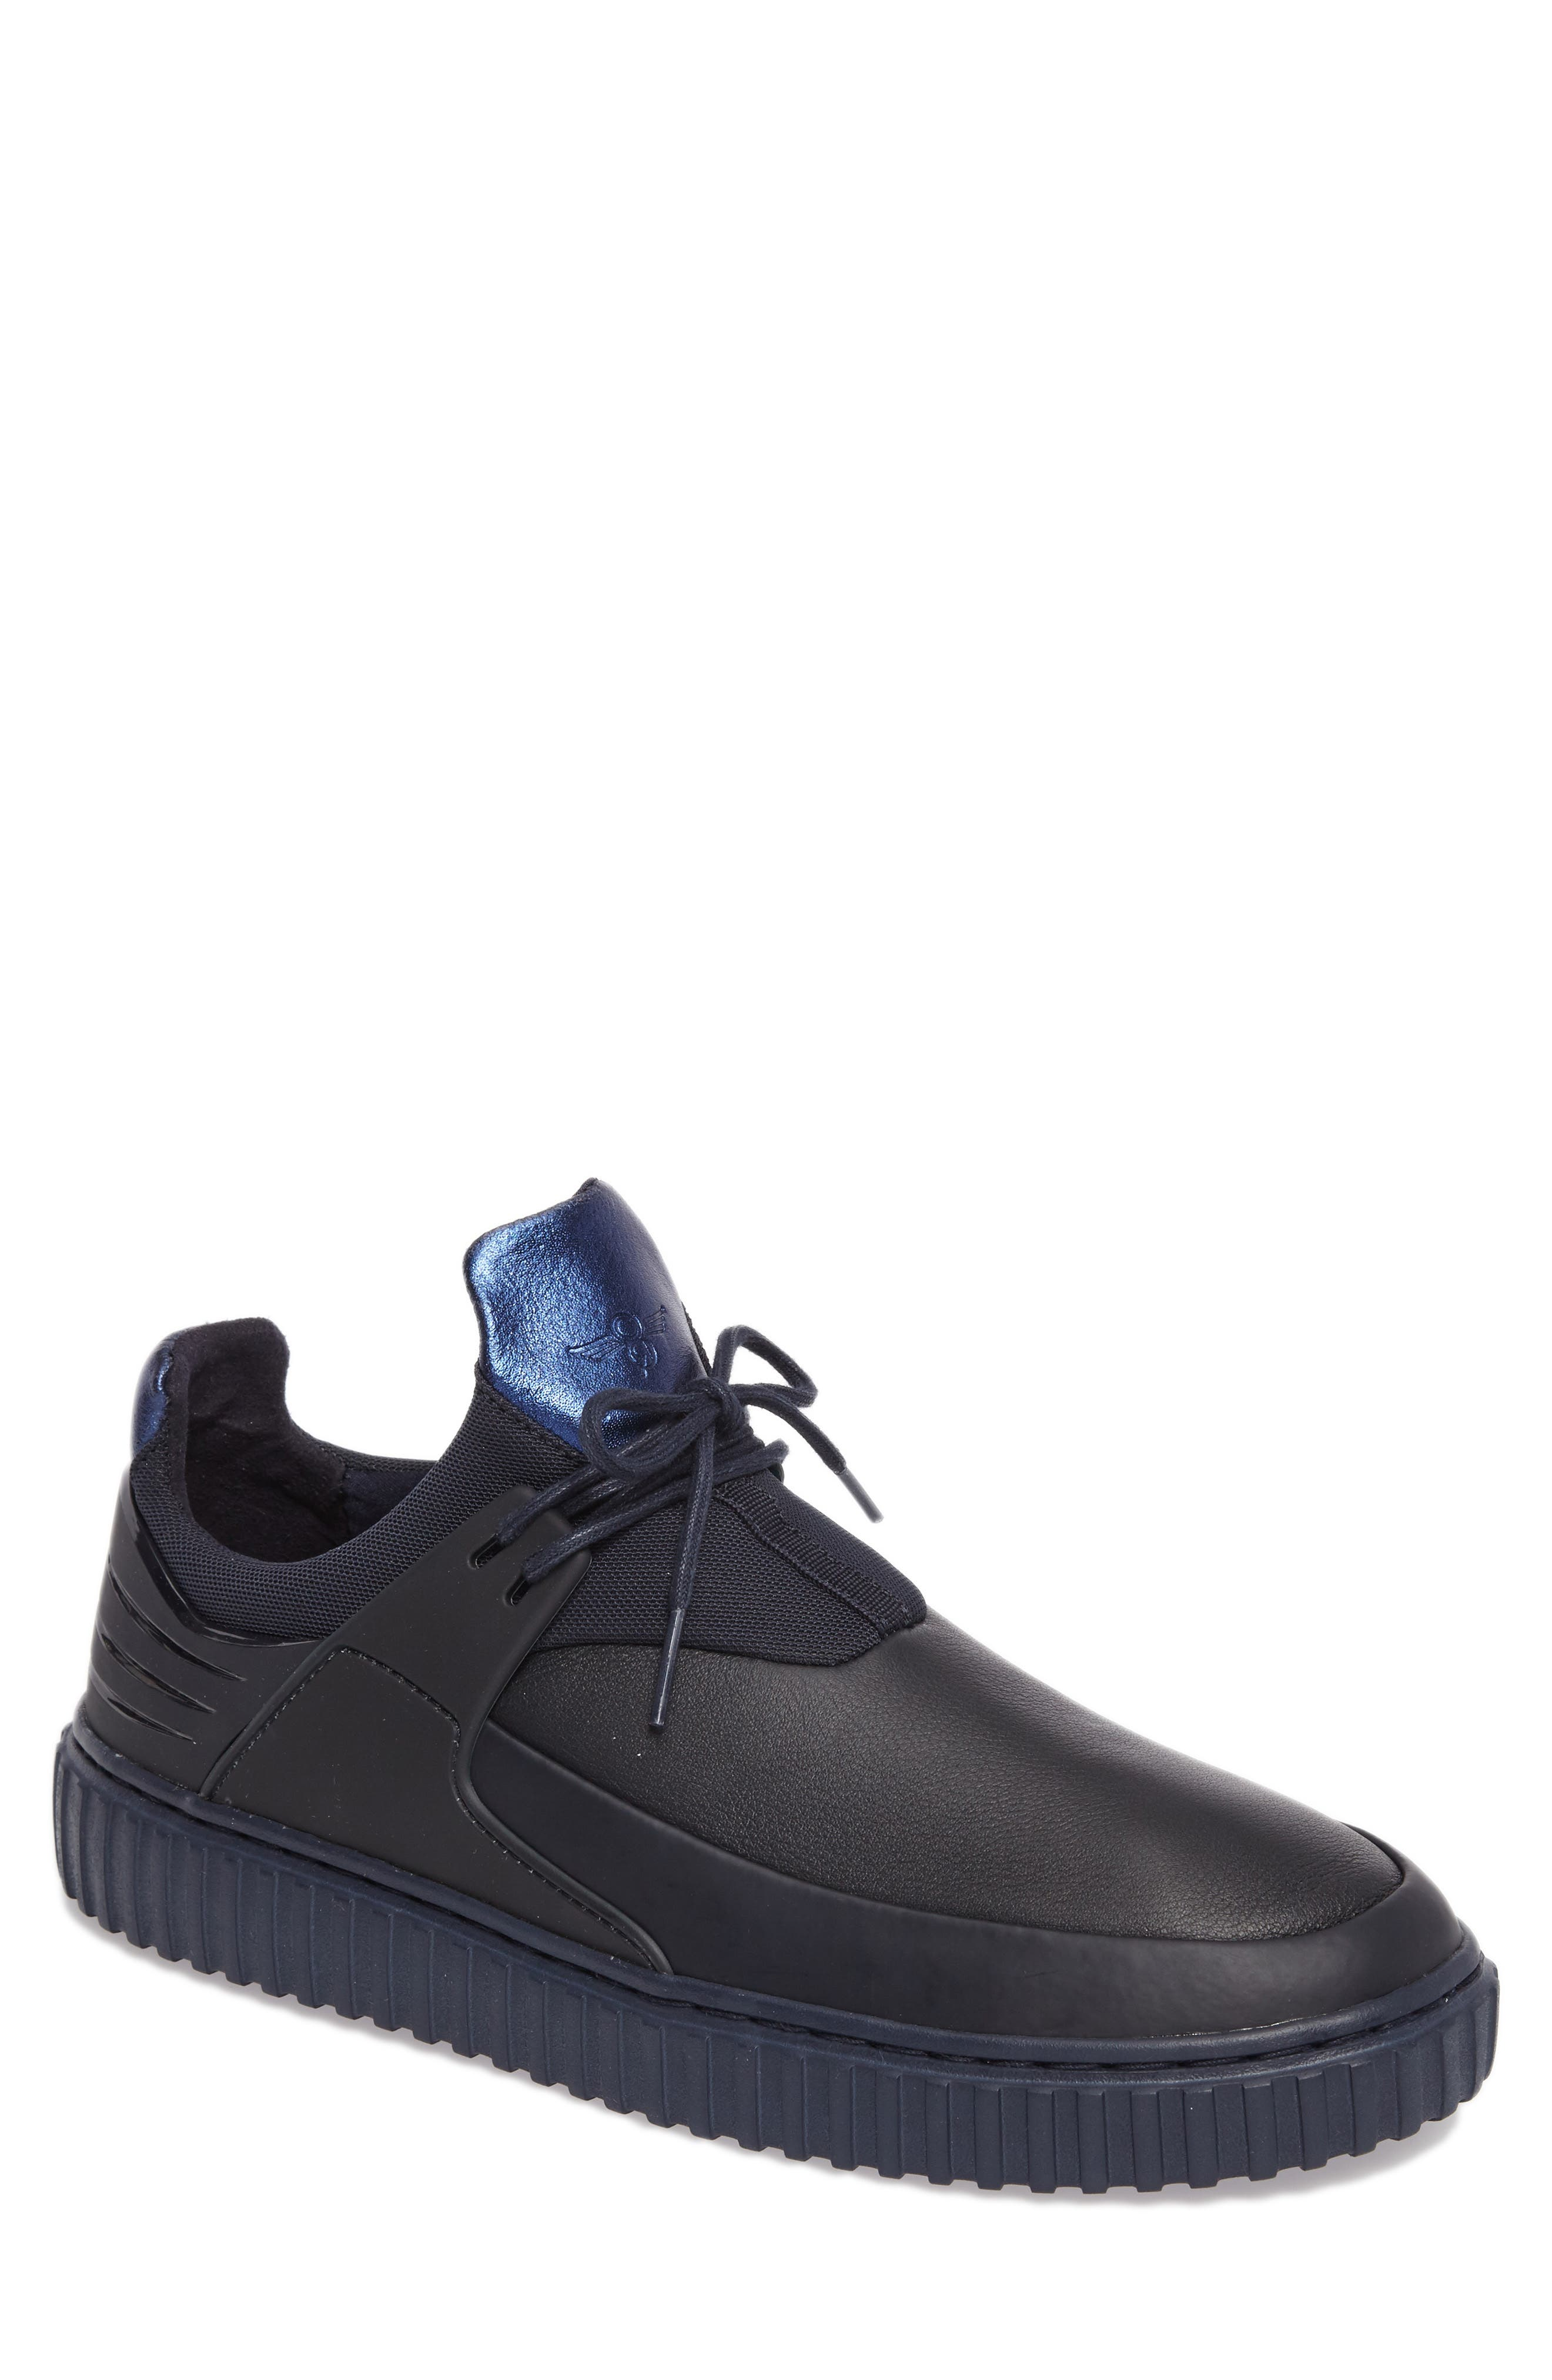 Castucci Mid Sneaker,                         Main,                         color, Navy Leather